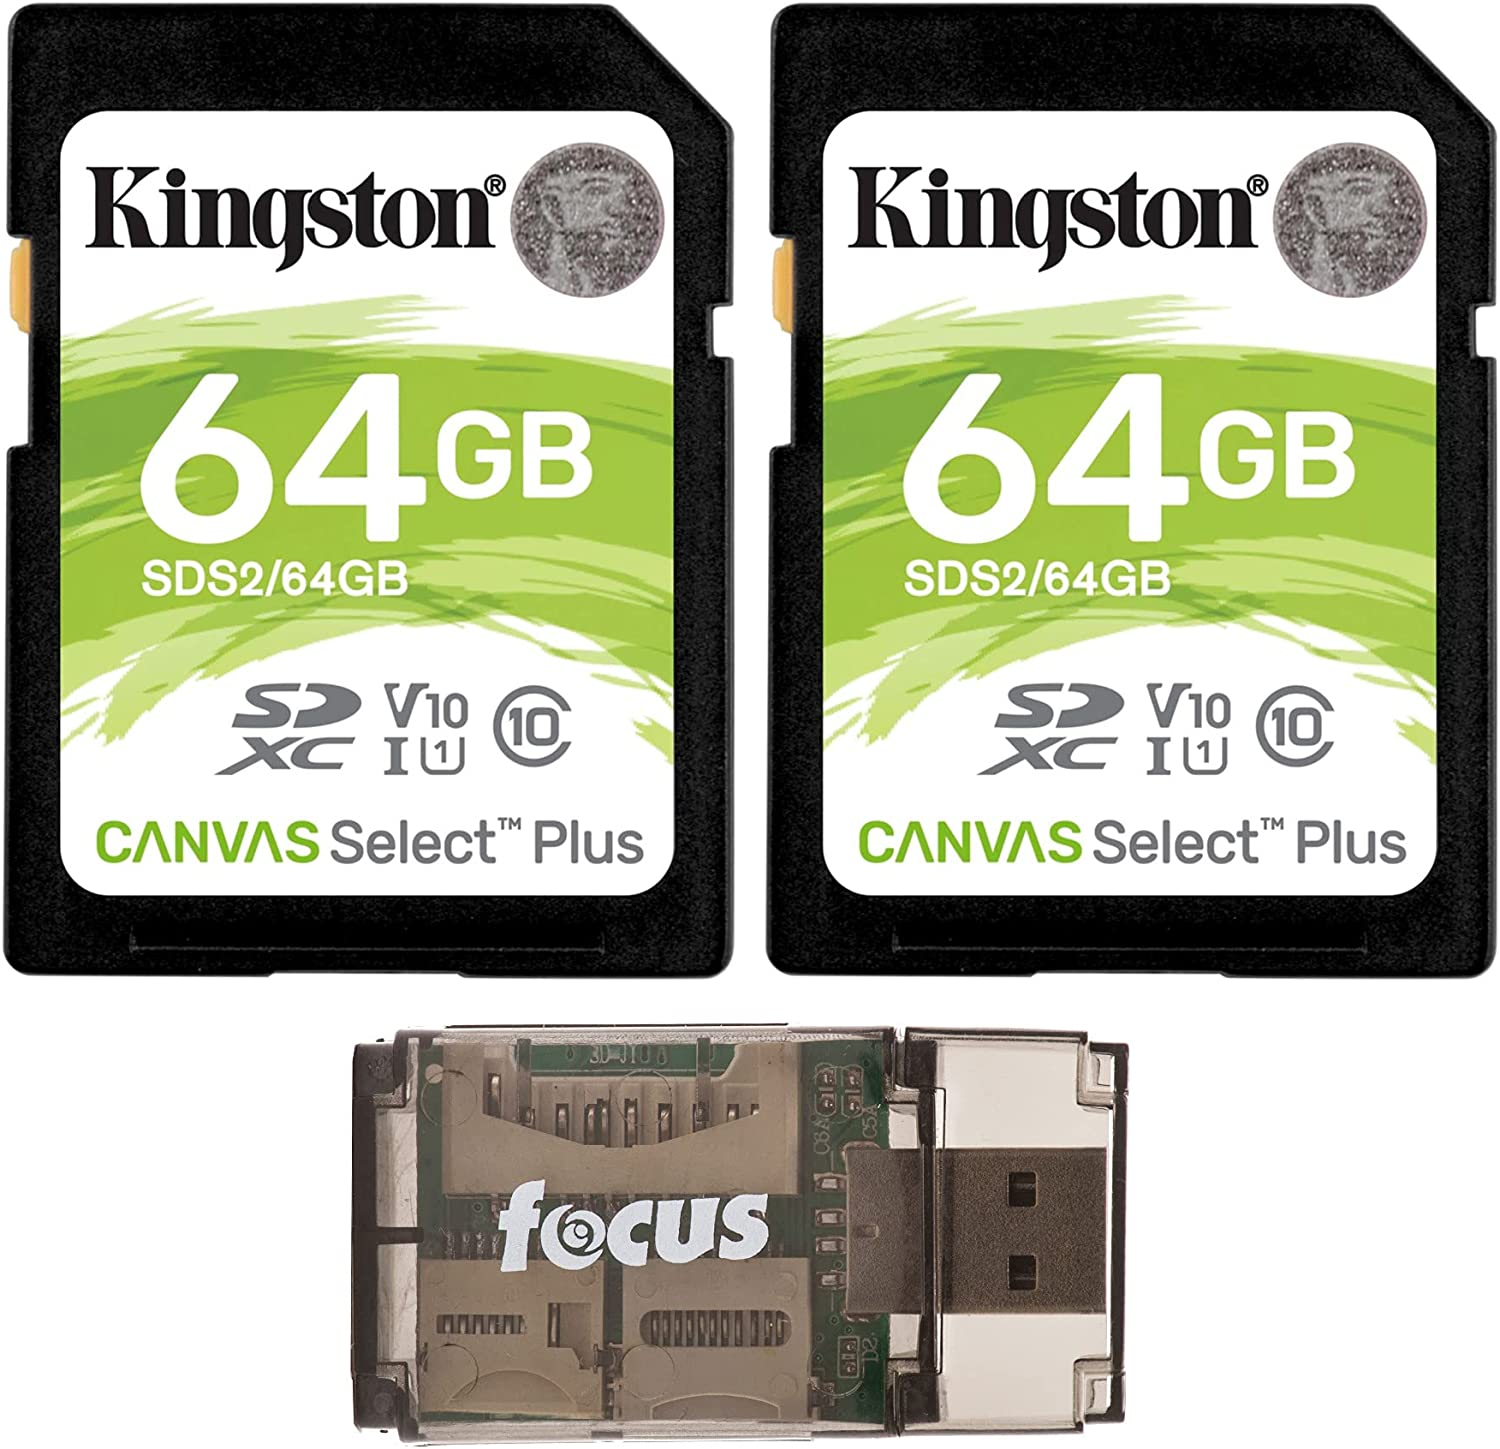 Kingston 64GB SDHC Canvas Select Plus Memory Card (2-Pack) with Focus High Speed Card Reader Bundle (3 Items)